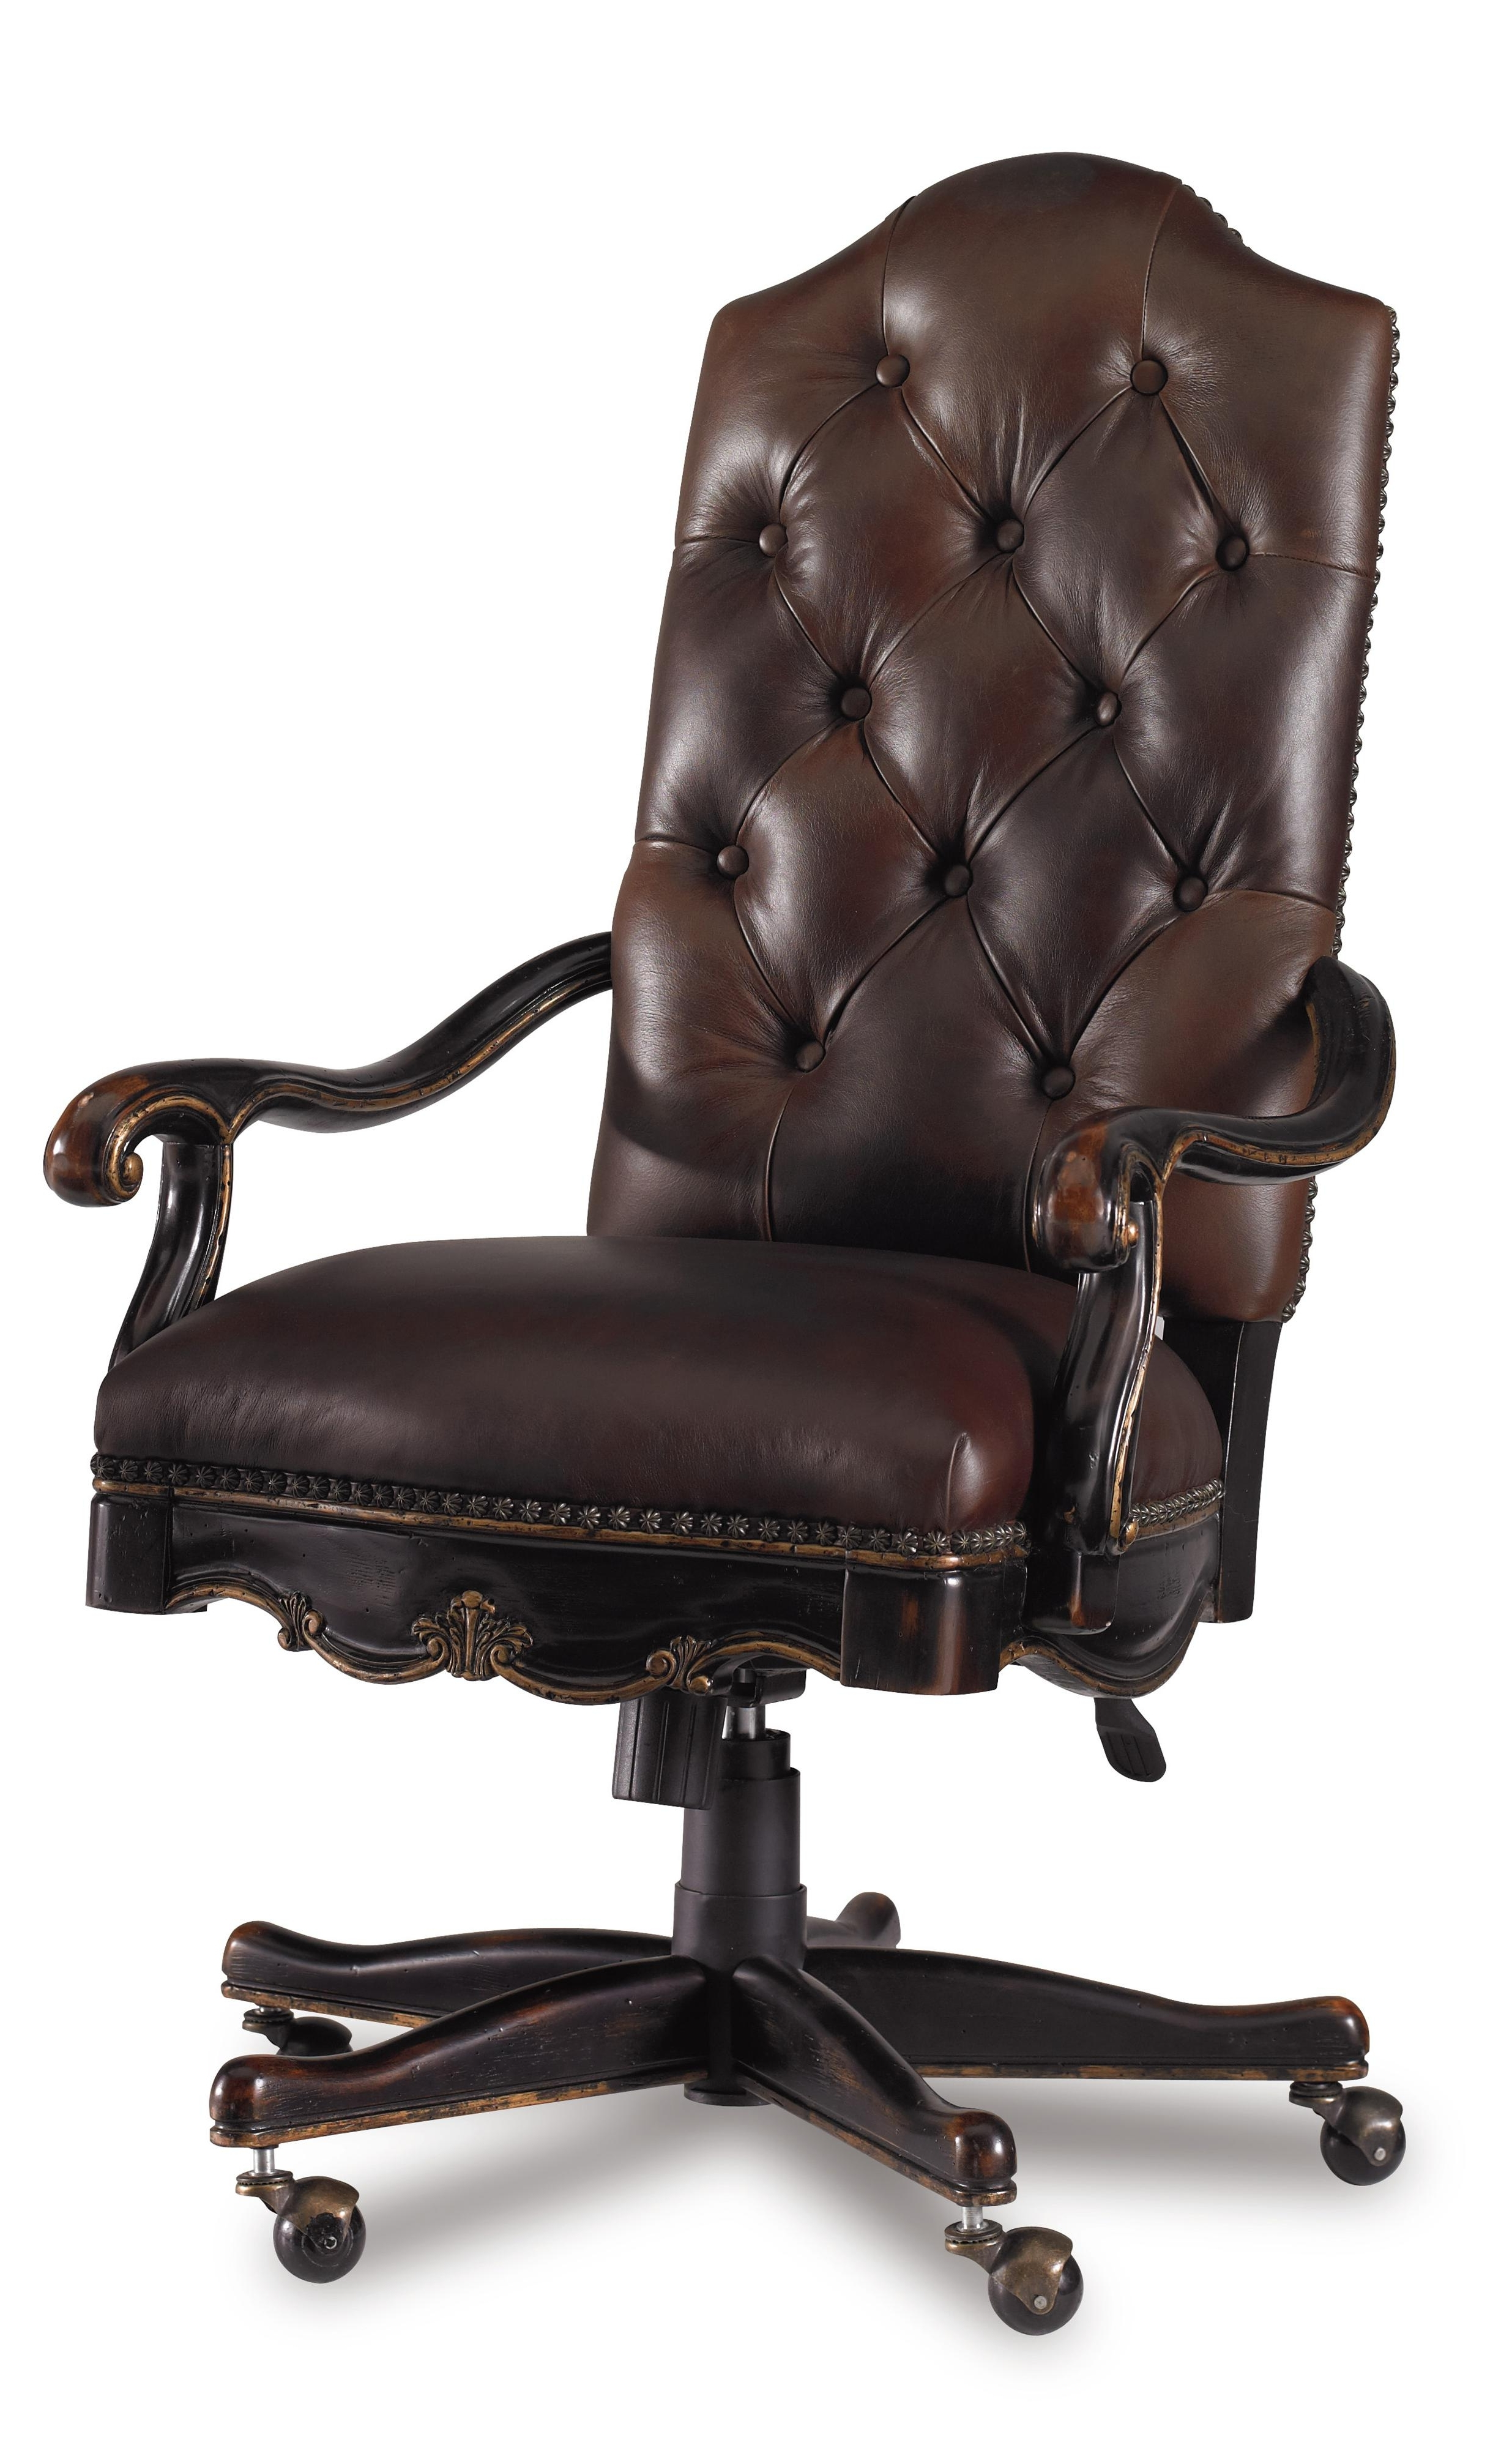 Verona Cream Executive Leather Office Chairs With Recent Chair : Martinez Executive Tilt Leather Office Chair Big And Tall (View 4 of 20)